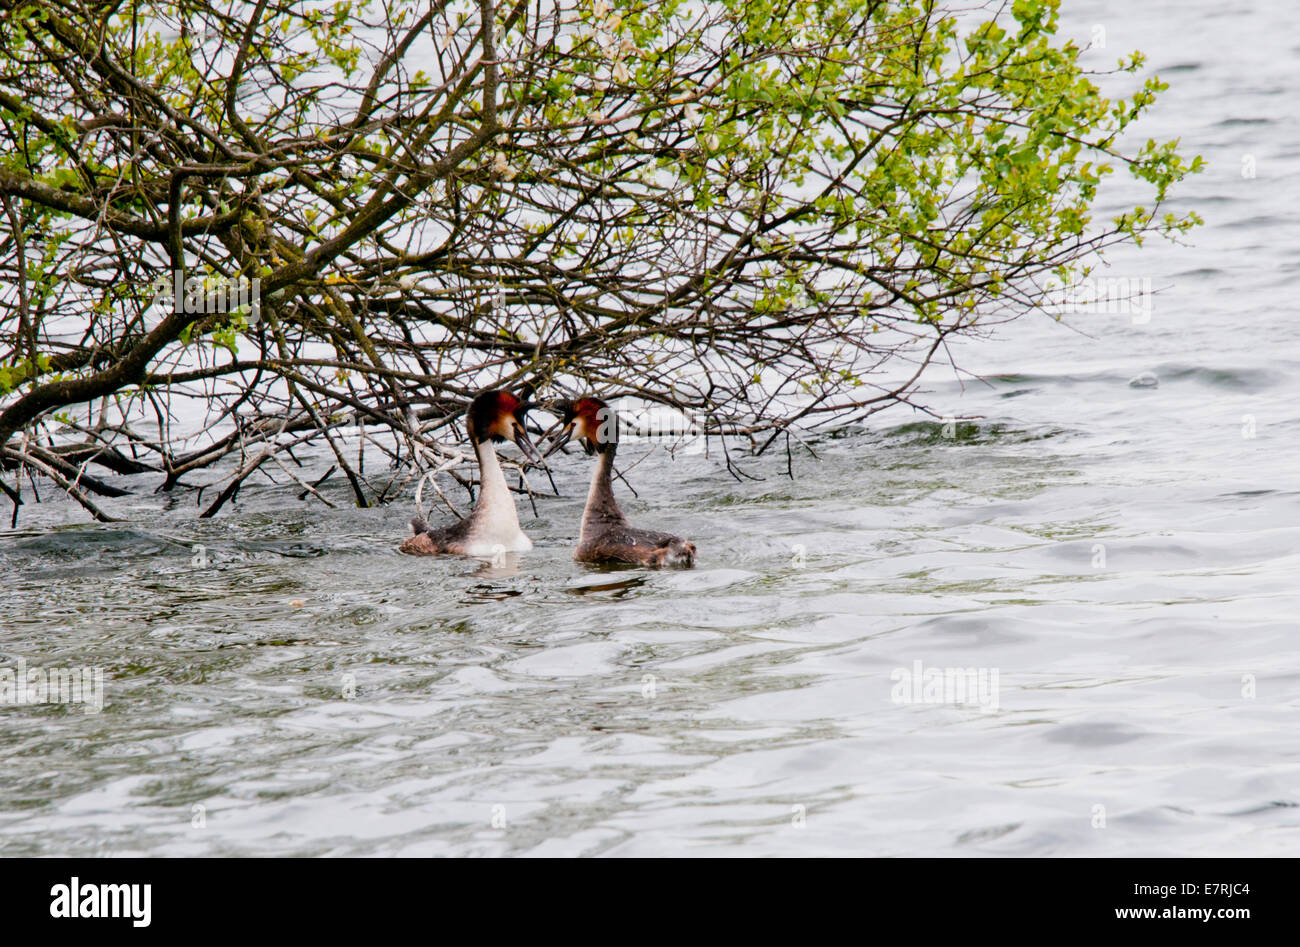 Pair of Great Crested Grebes displaying at Cheshunt, Herts - Stock Image